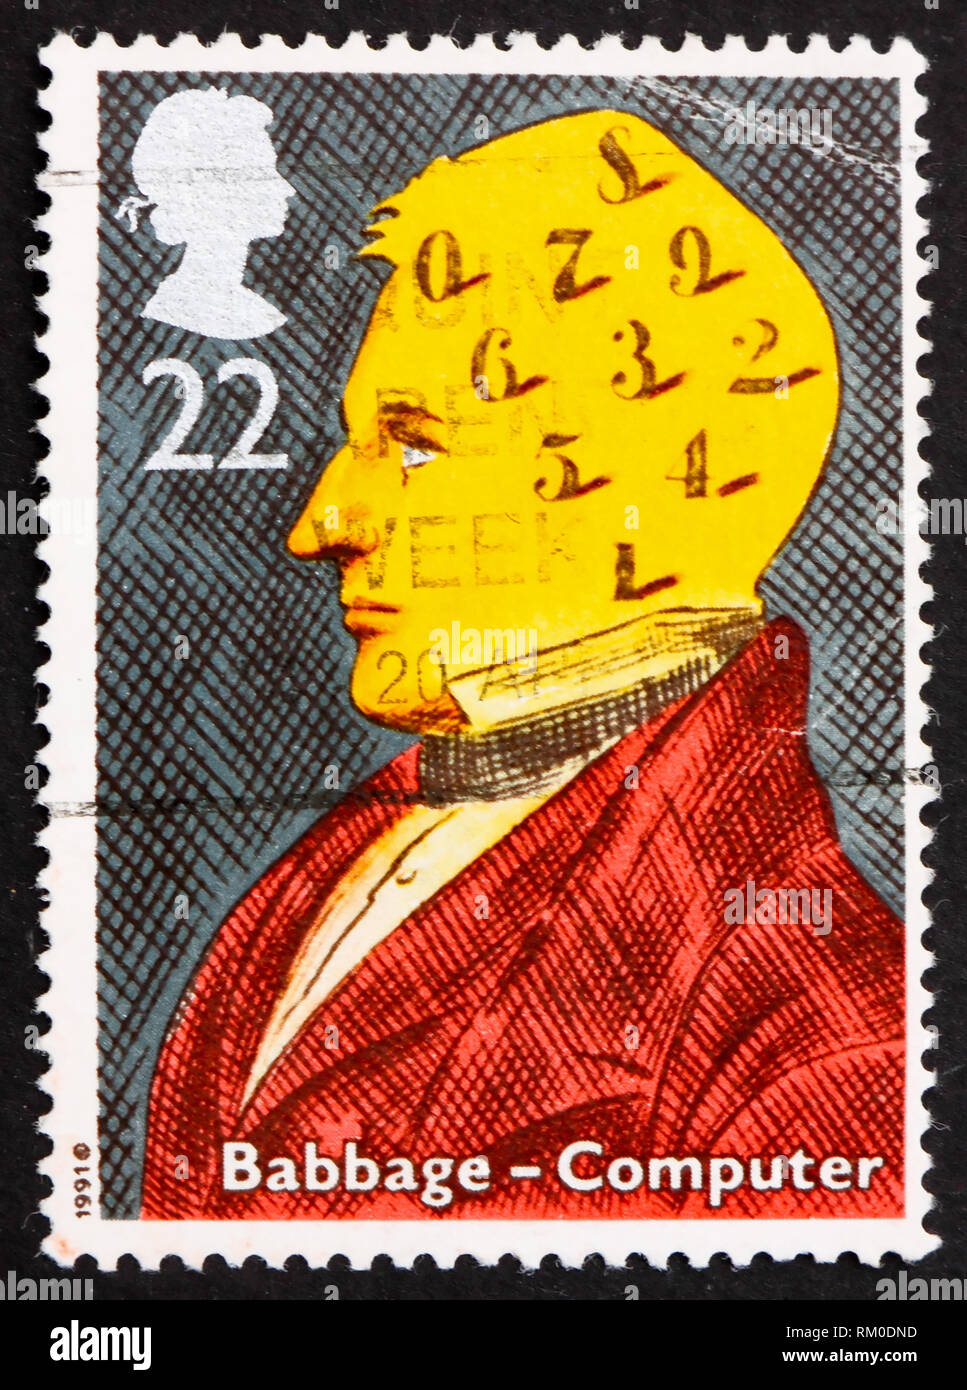 GREAT BRITAIN – CIRCA 1991: a stamp printed in the Great Britain shows Charles Babbage, computers, circa 1991 - Stock Image